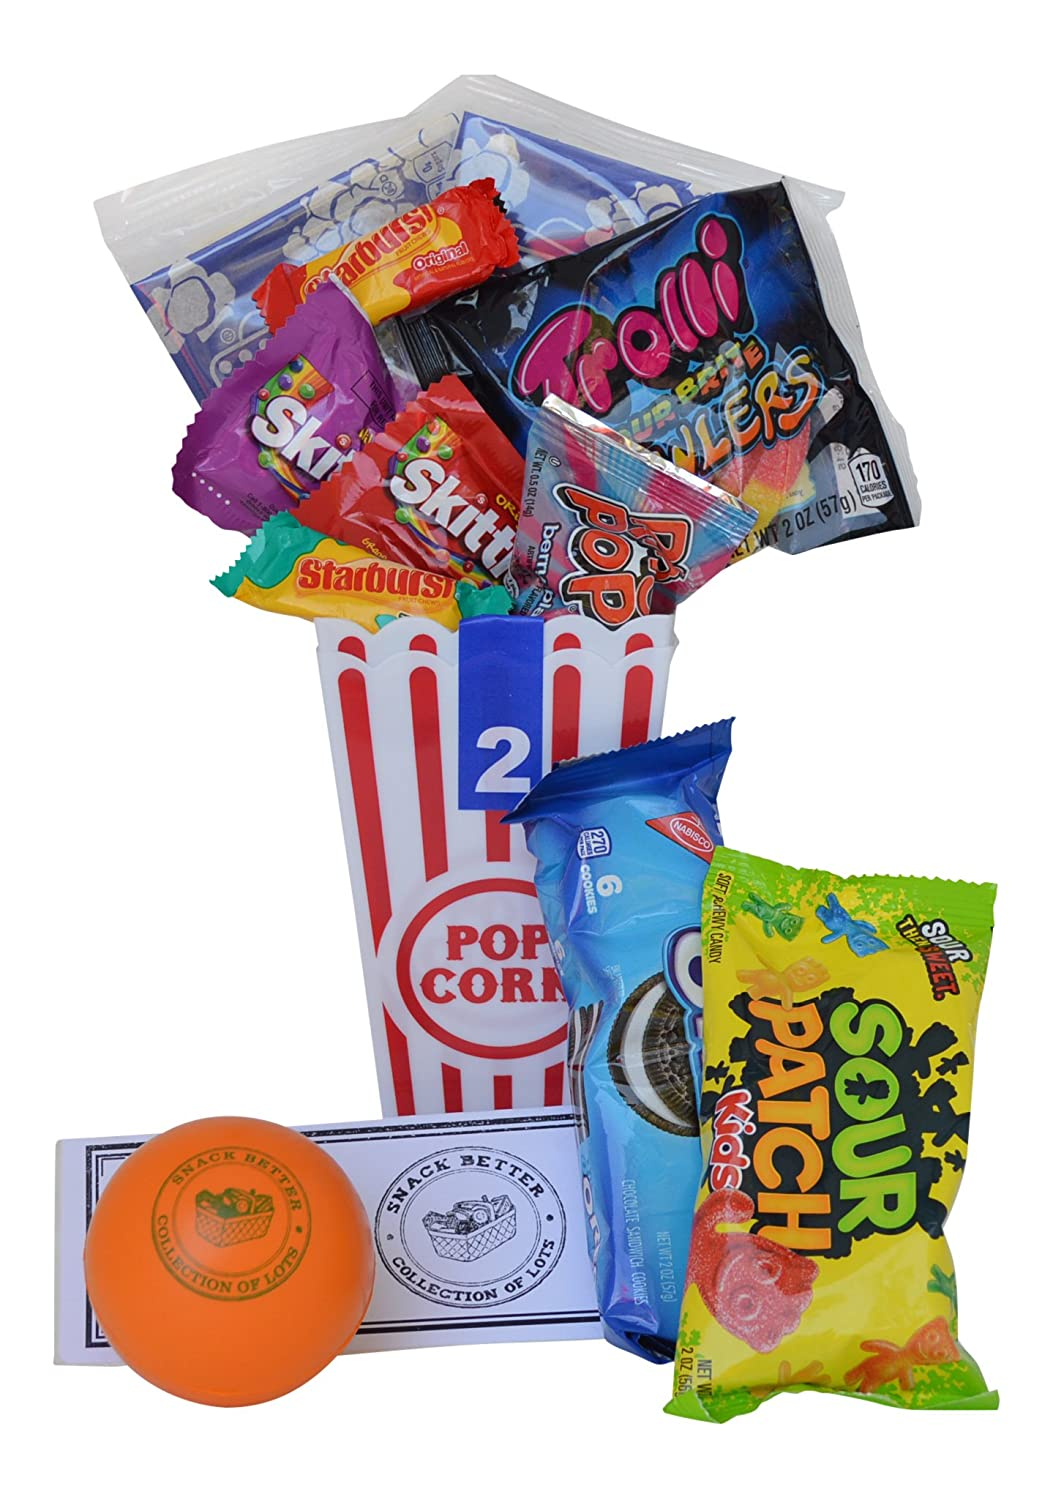 Amazon movie night gift bundle care package easter basket amazon movie night gift bundle care package easter basket christmas birthday grocery gourmet food negle Image collections